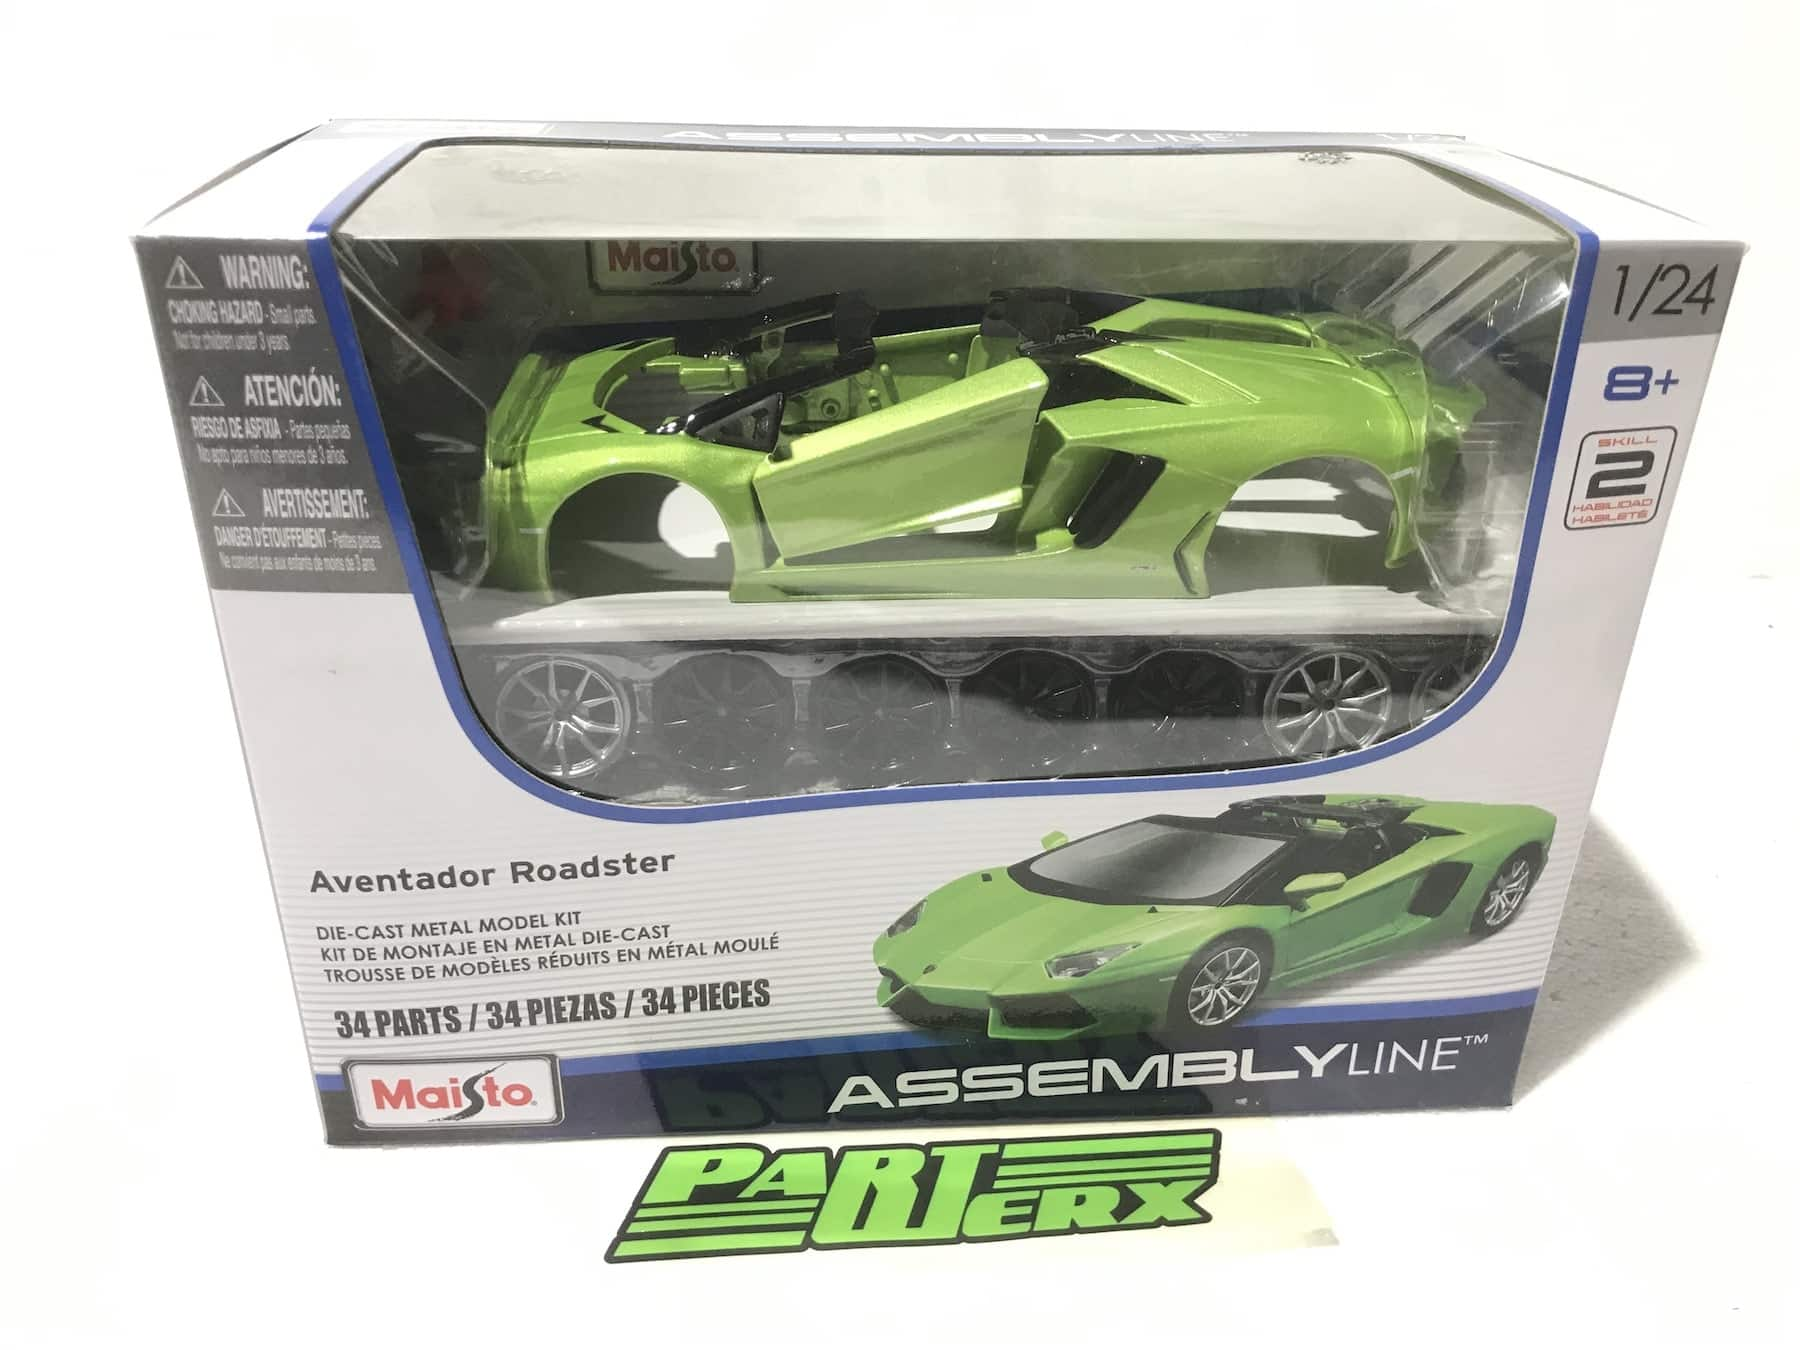 Lamborghini Aventador LP700-4 Roadster Kit Special Edition 1:24 Scale Model Car Christmas Gift Xmas Birthday Present